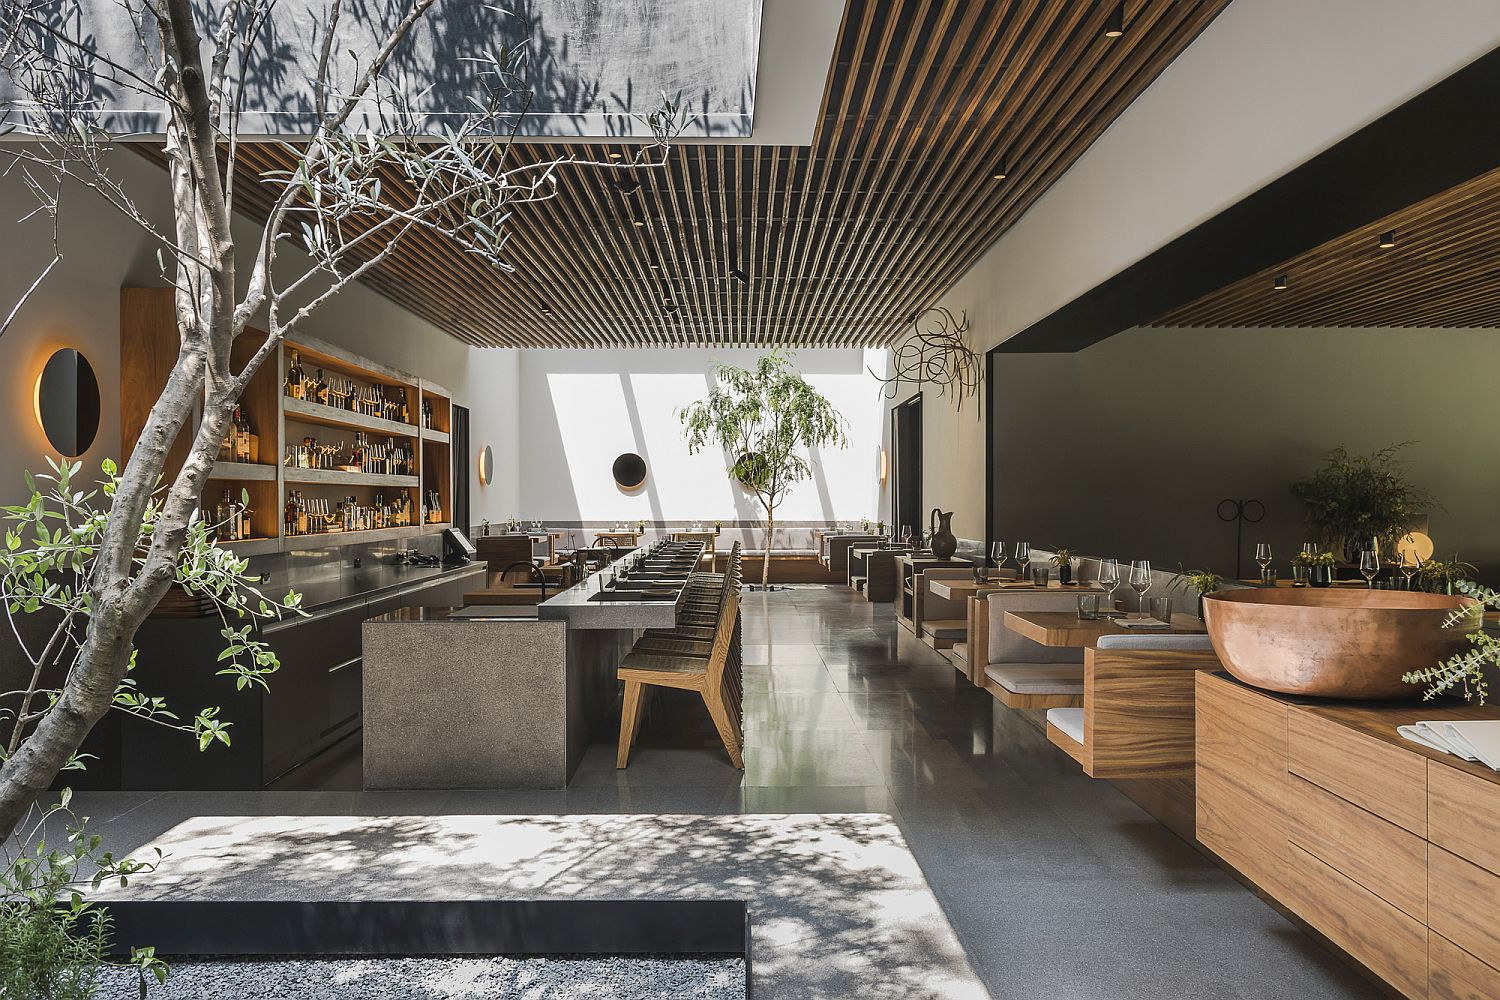 Stunning new home of Pujol in Polanco, Mexico City